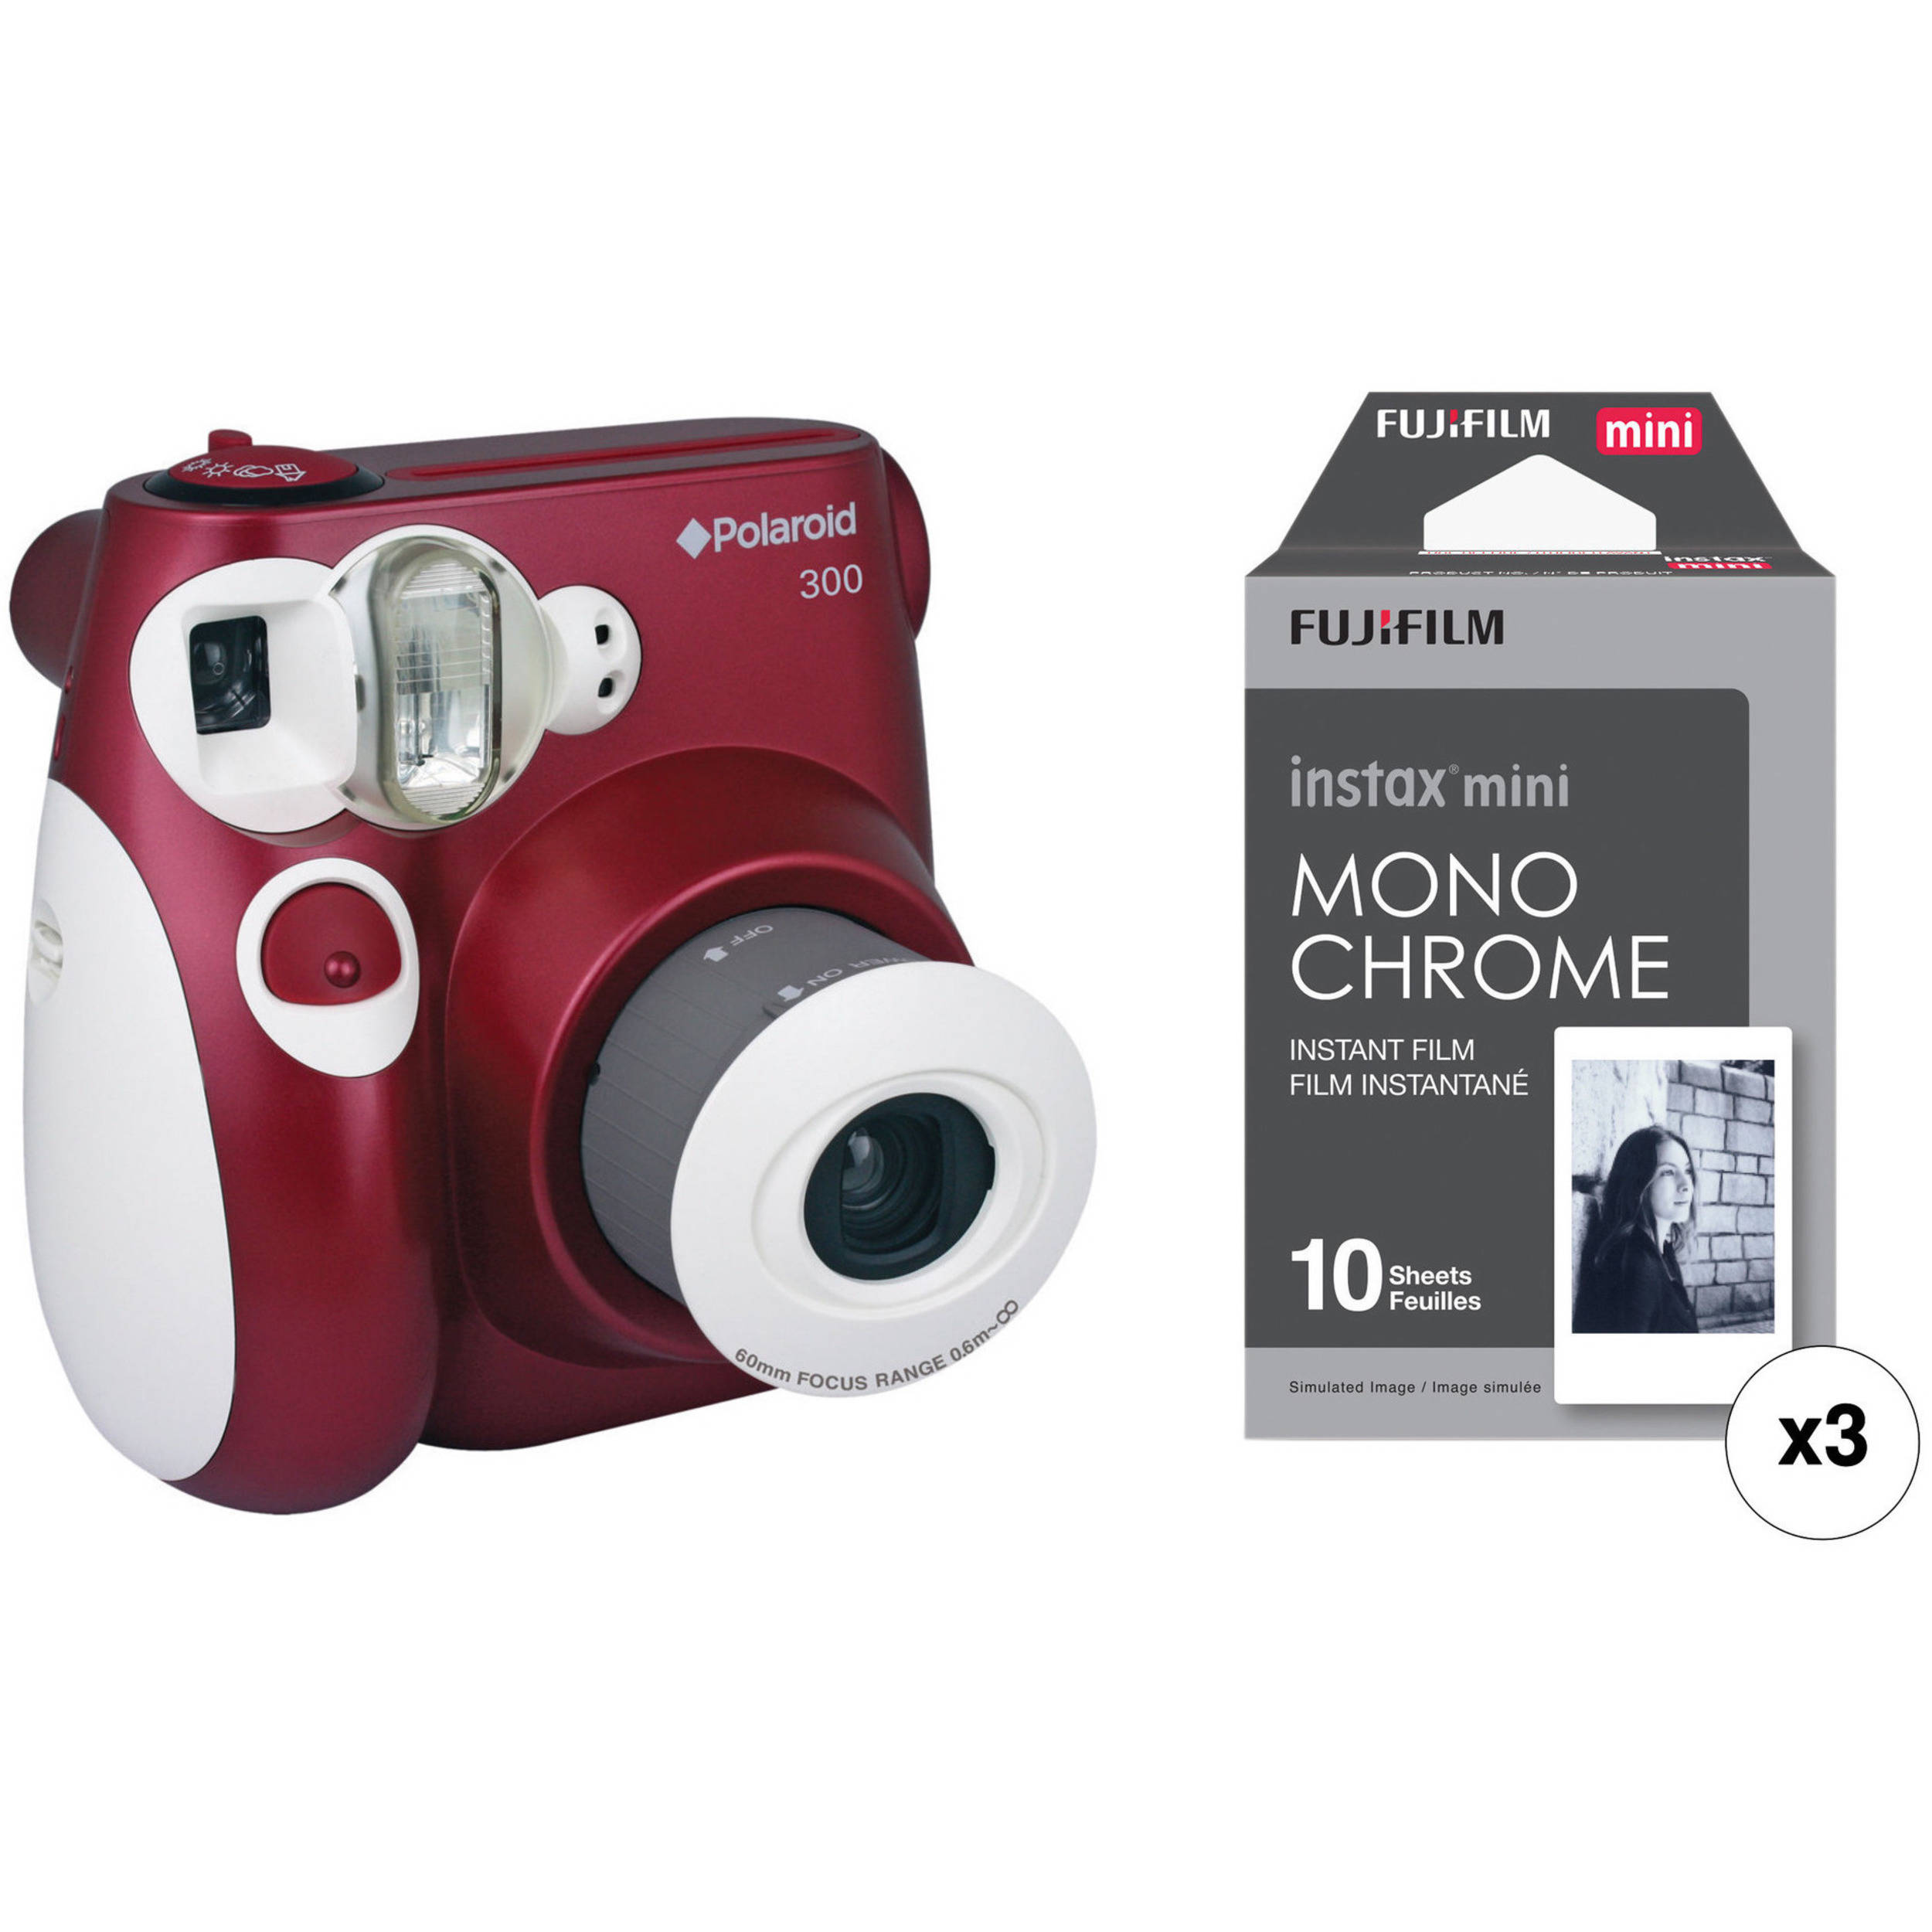 Polaroid 300 Instant Film Camera with Instant Film Kit (Red) B&H